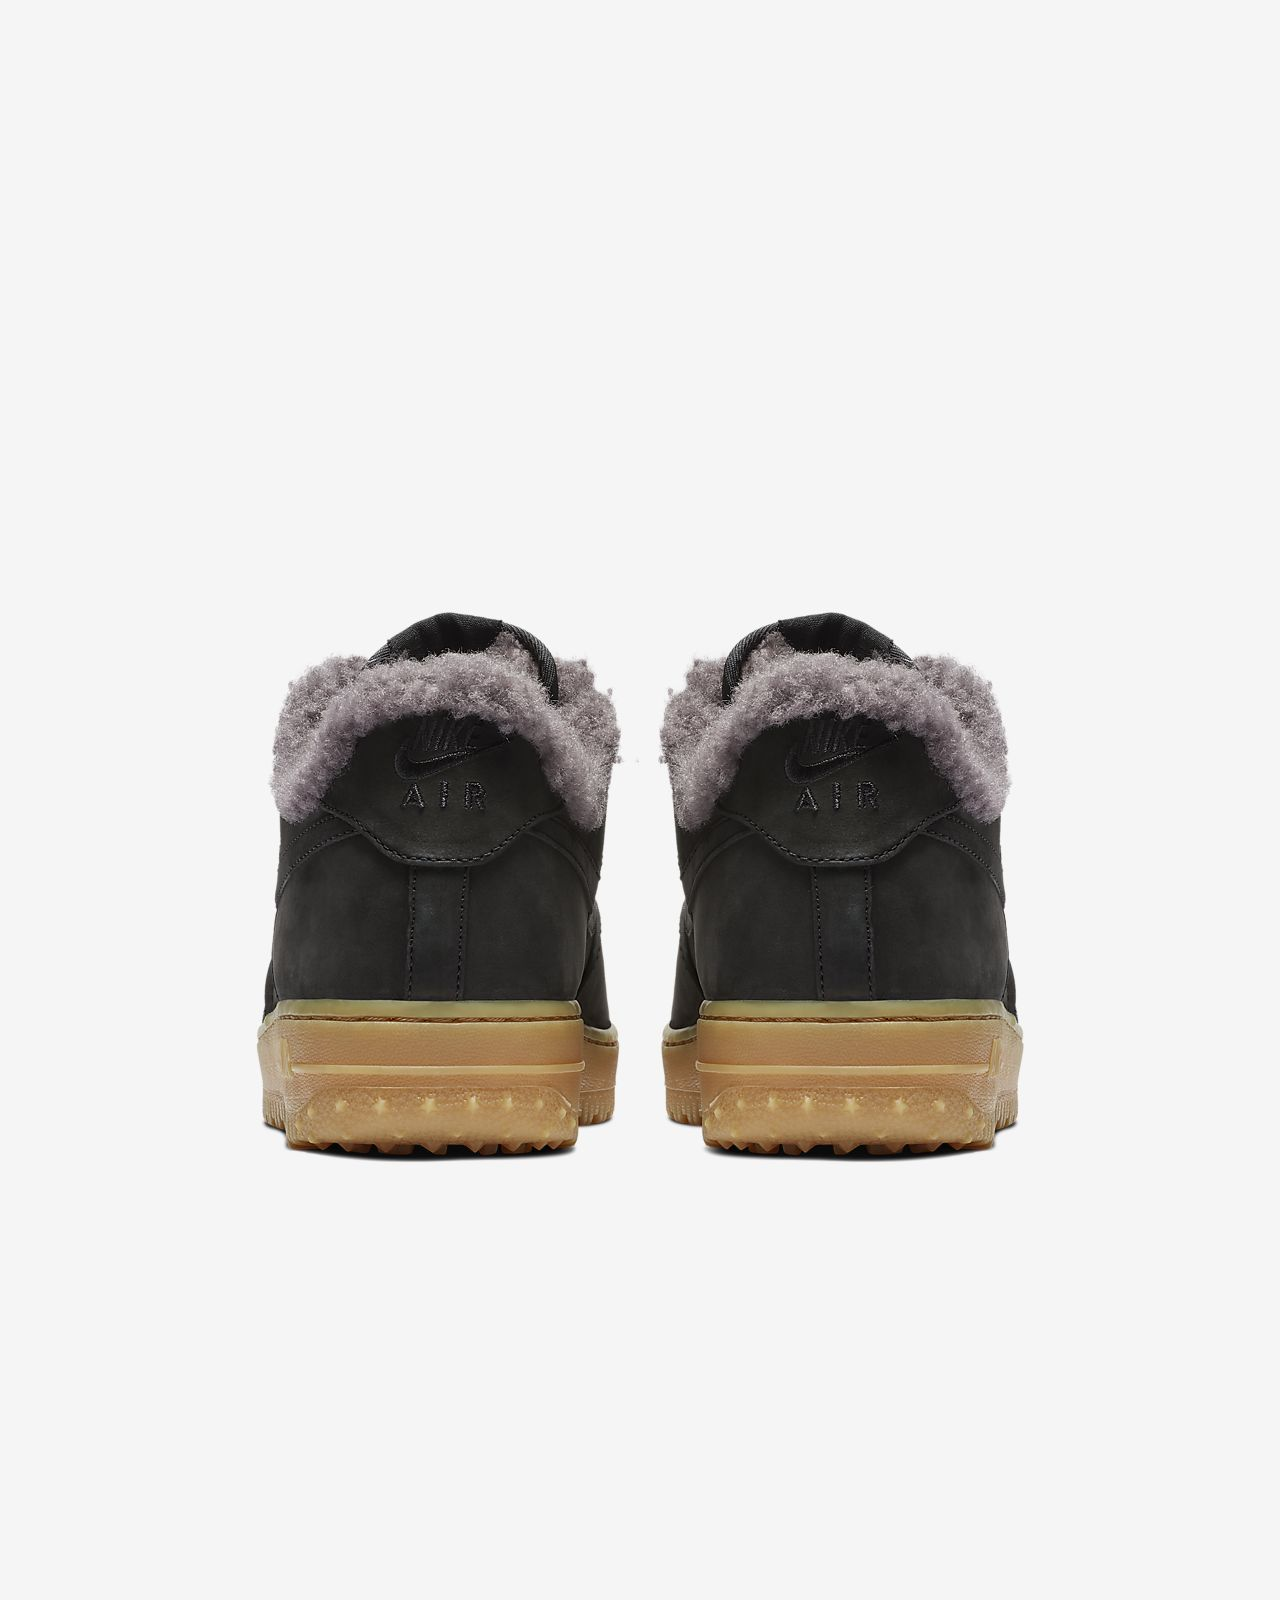 Premium Pour Force Chaussure Homme Air Winter Nike 1 m0P8yvnNwO